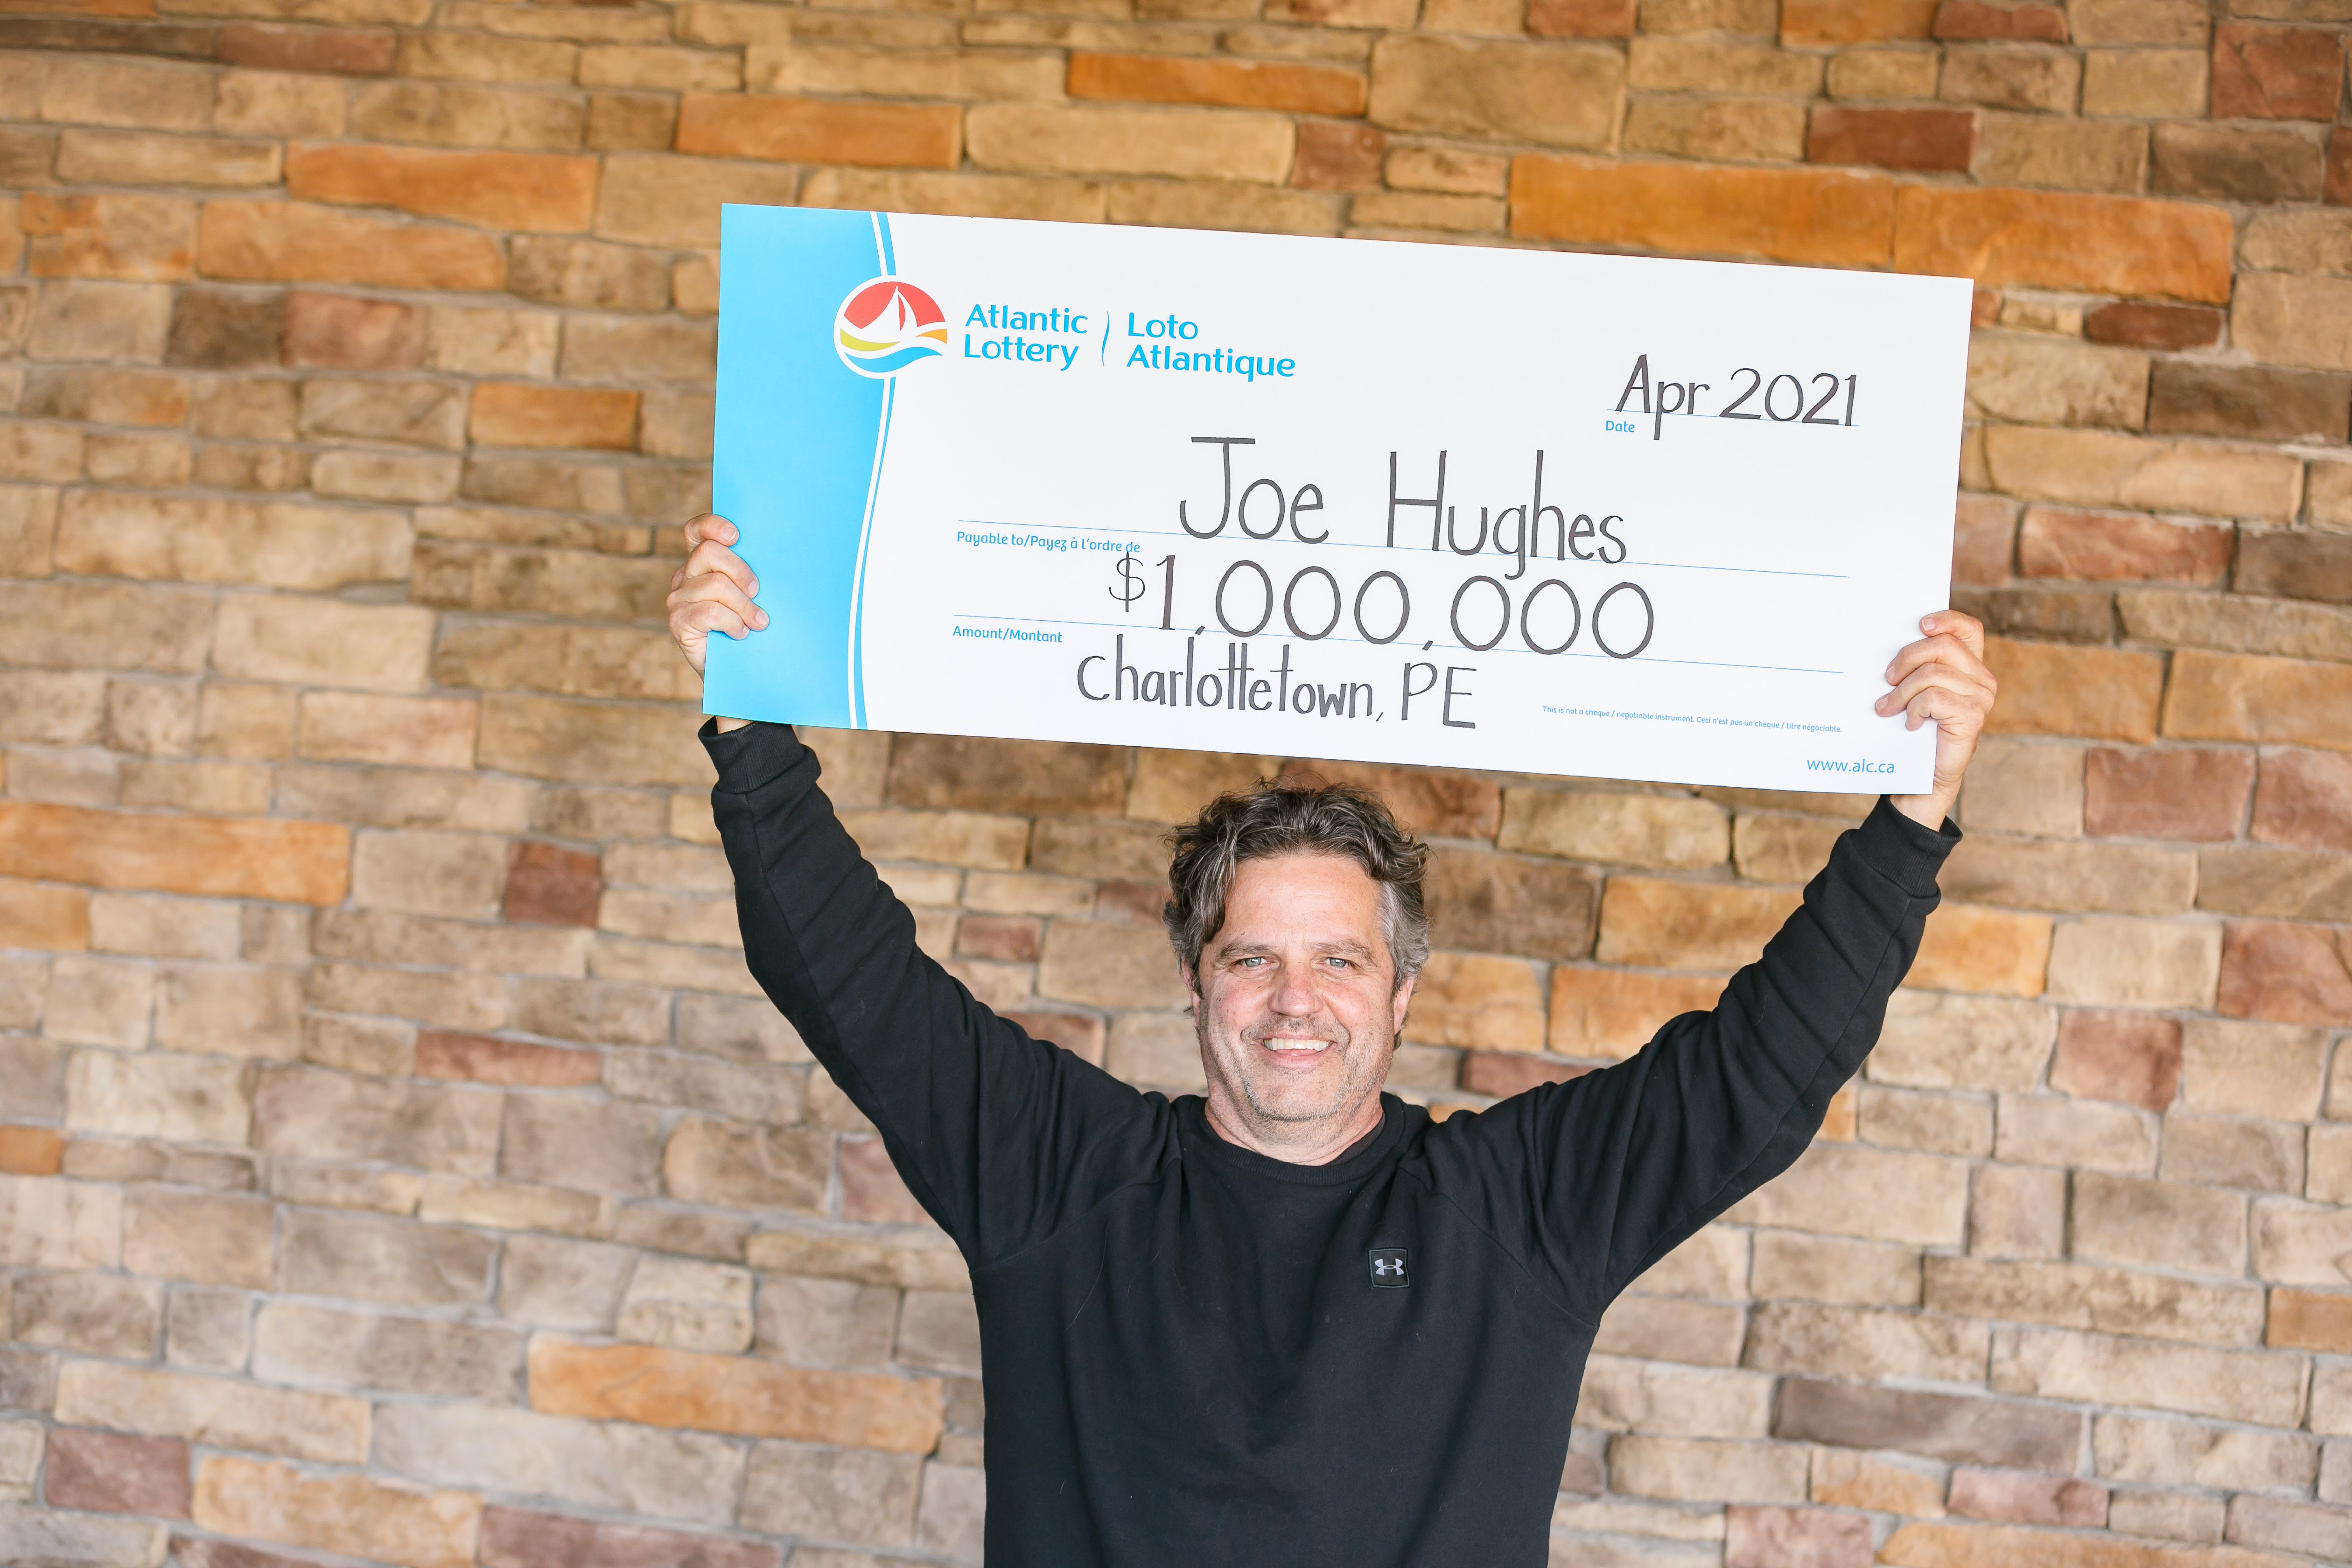 Joe Hughes walked into a local convenience store looking for a sandwich. He left with $1 million.